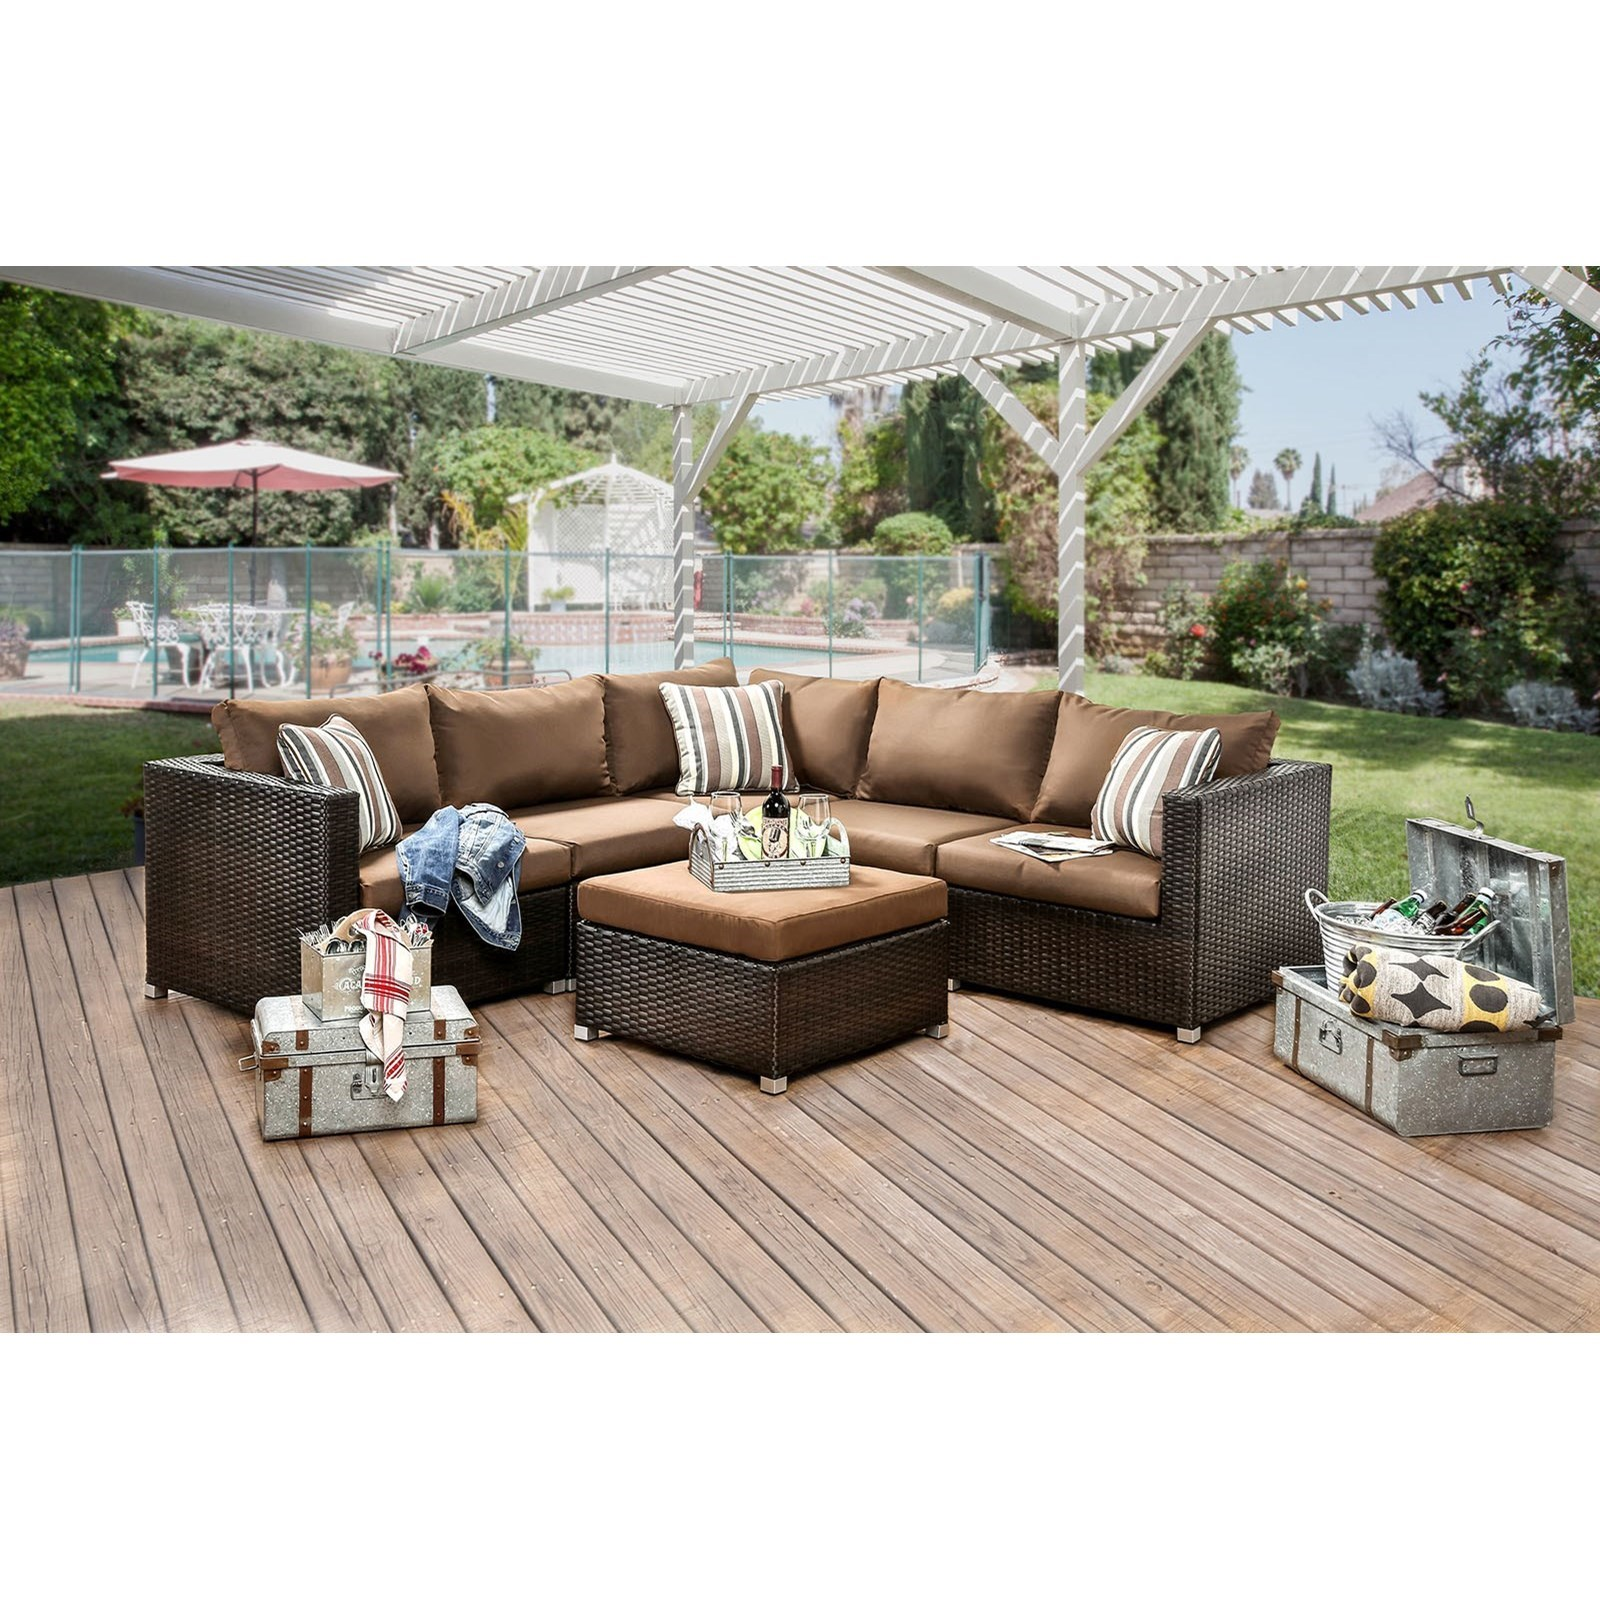 Furniture of America Abion Patio Sectional - Item Number: CM-OS1821BR-SET